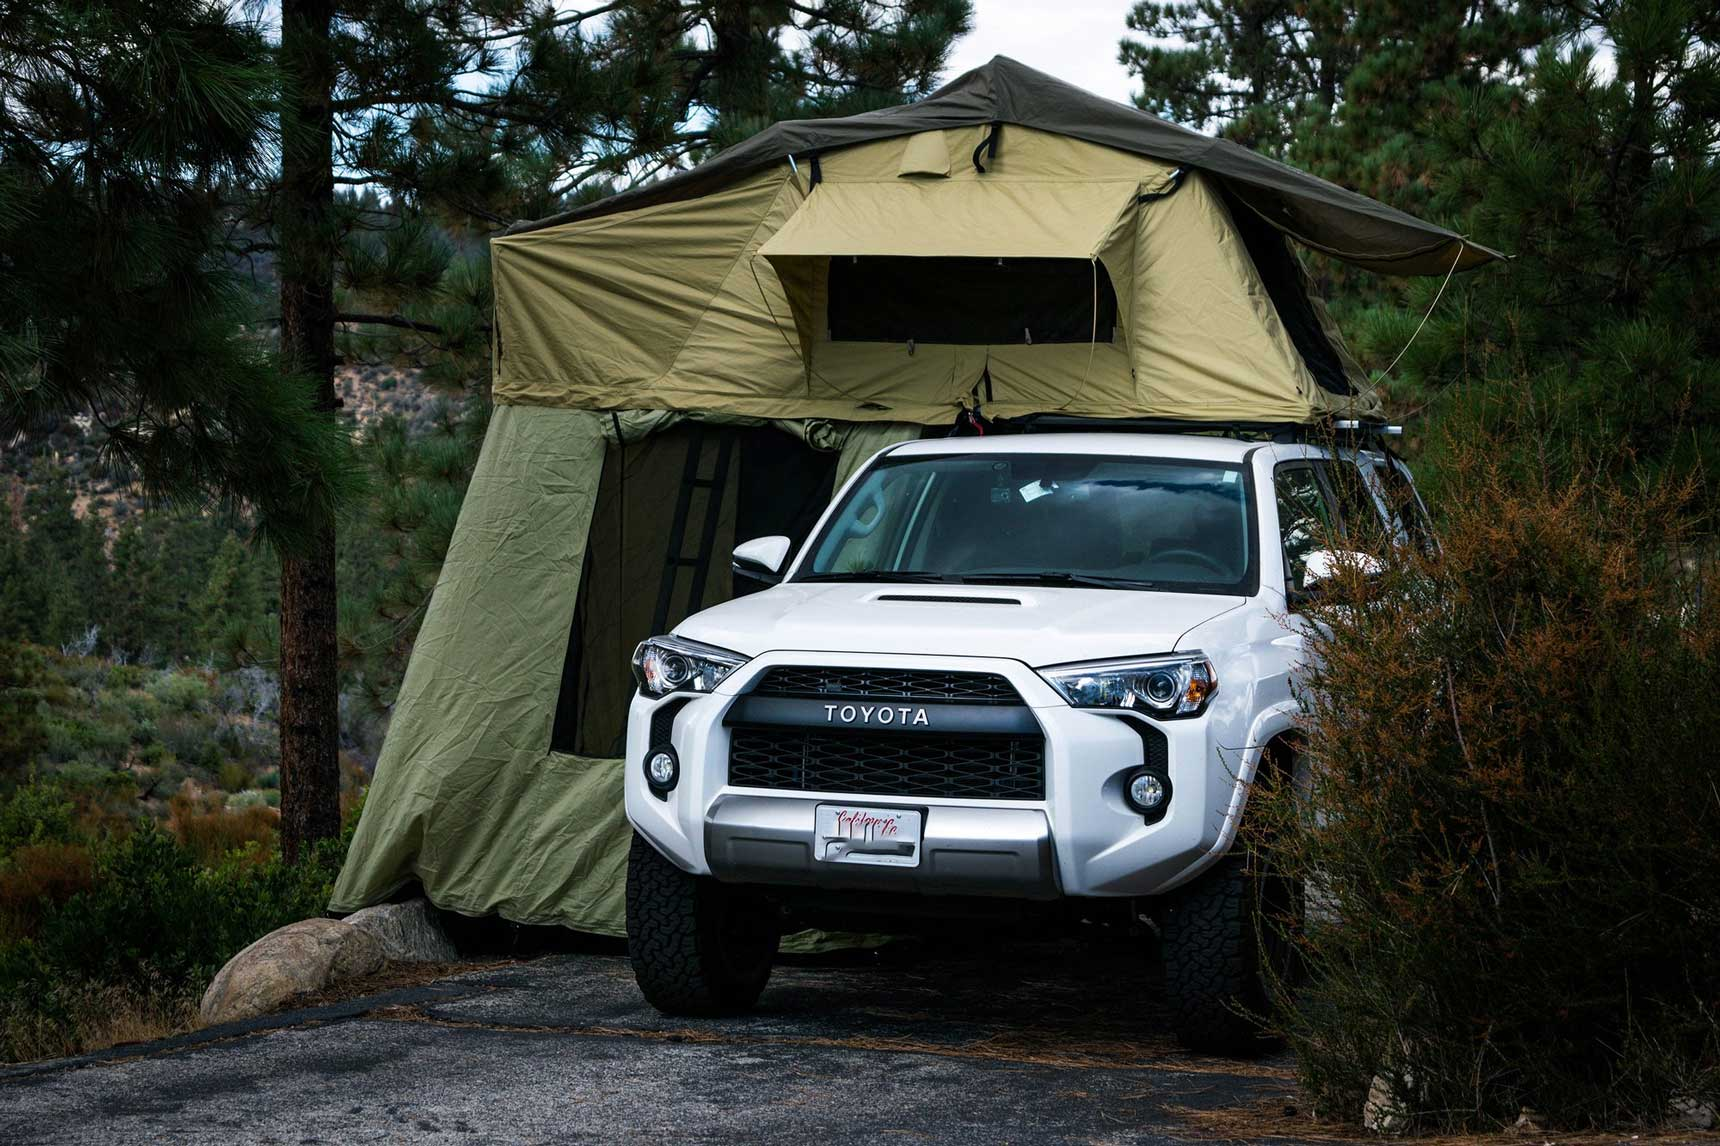 Suv Top Tent Sale Off 63